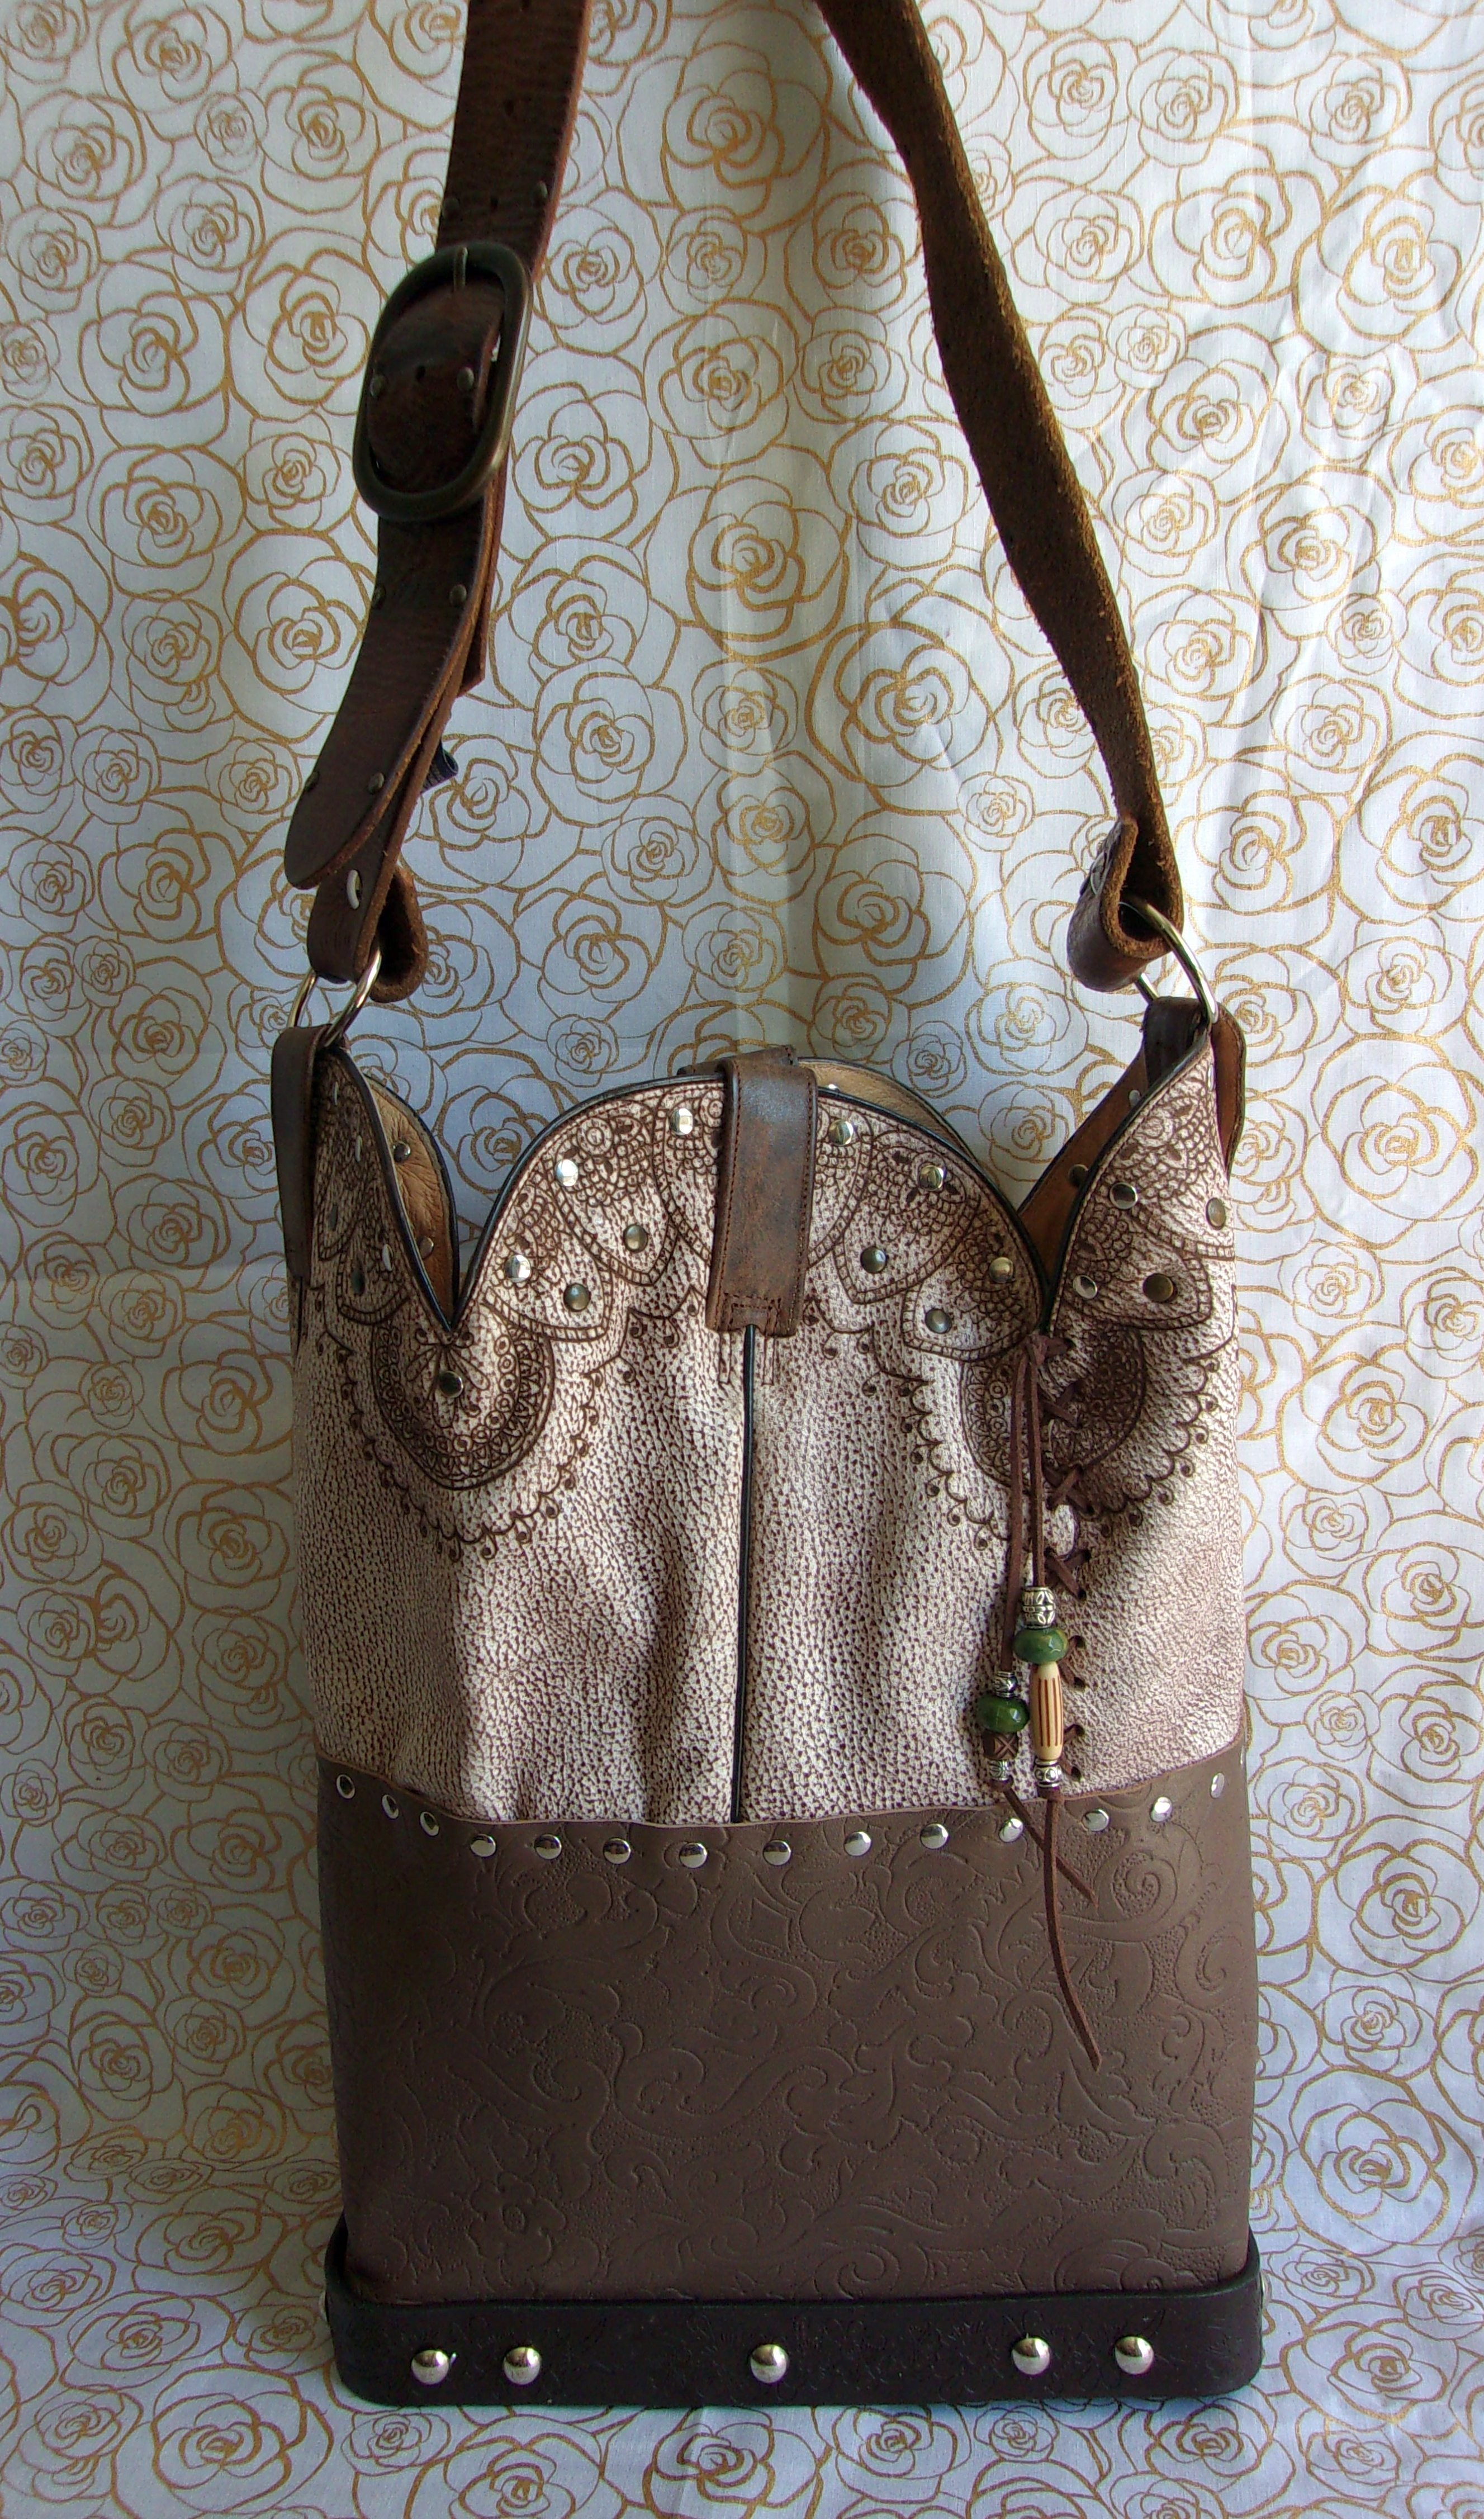 Longhorn Leather Shoulder Bag TS257 - Unique Leather Handbags and Totes by Chris Thompson